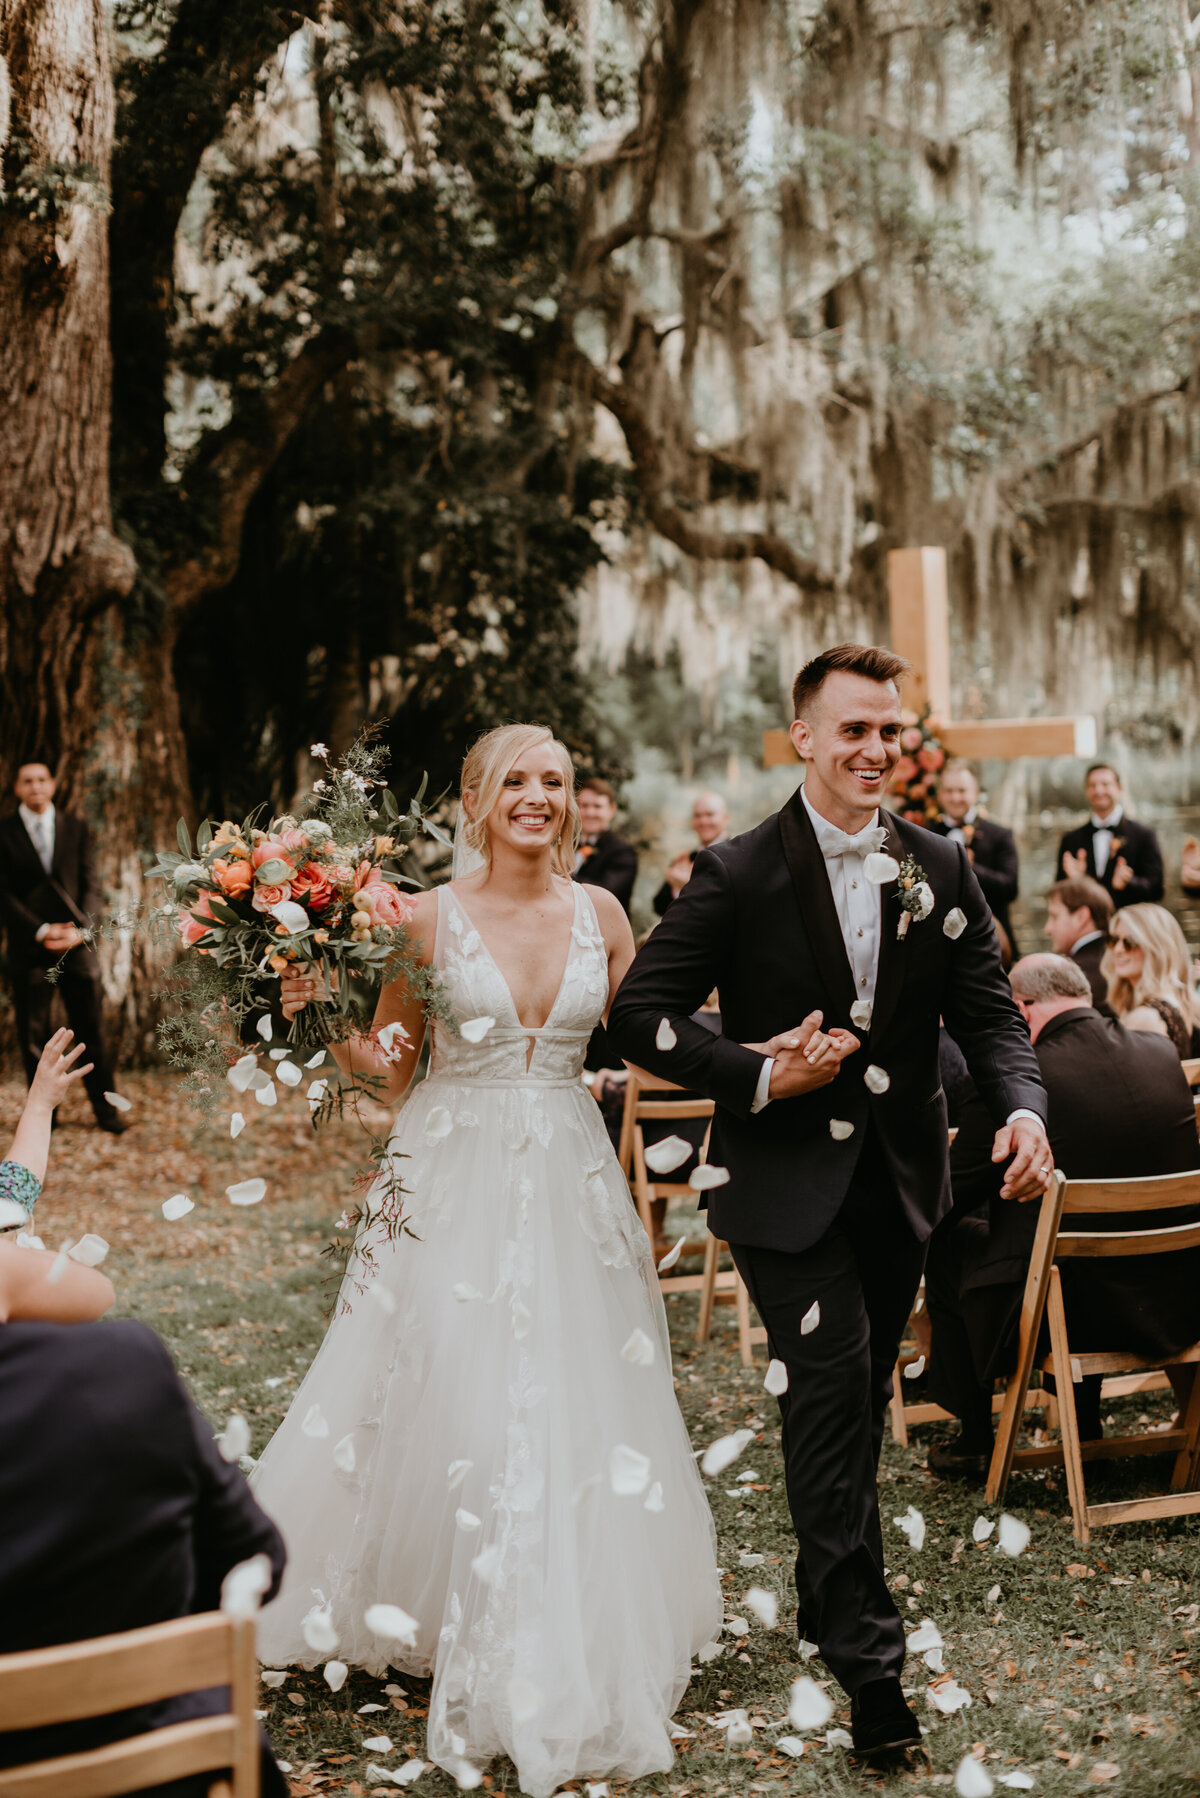 Alexis Max Charleston Wedding Photos by Lindsey O-0822-9664